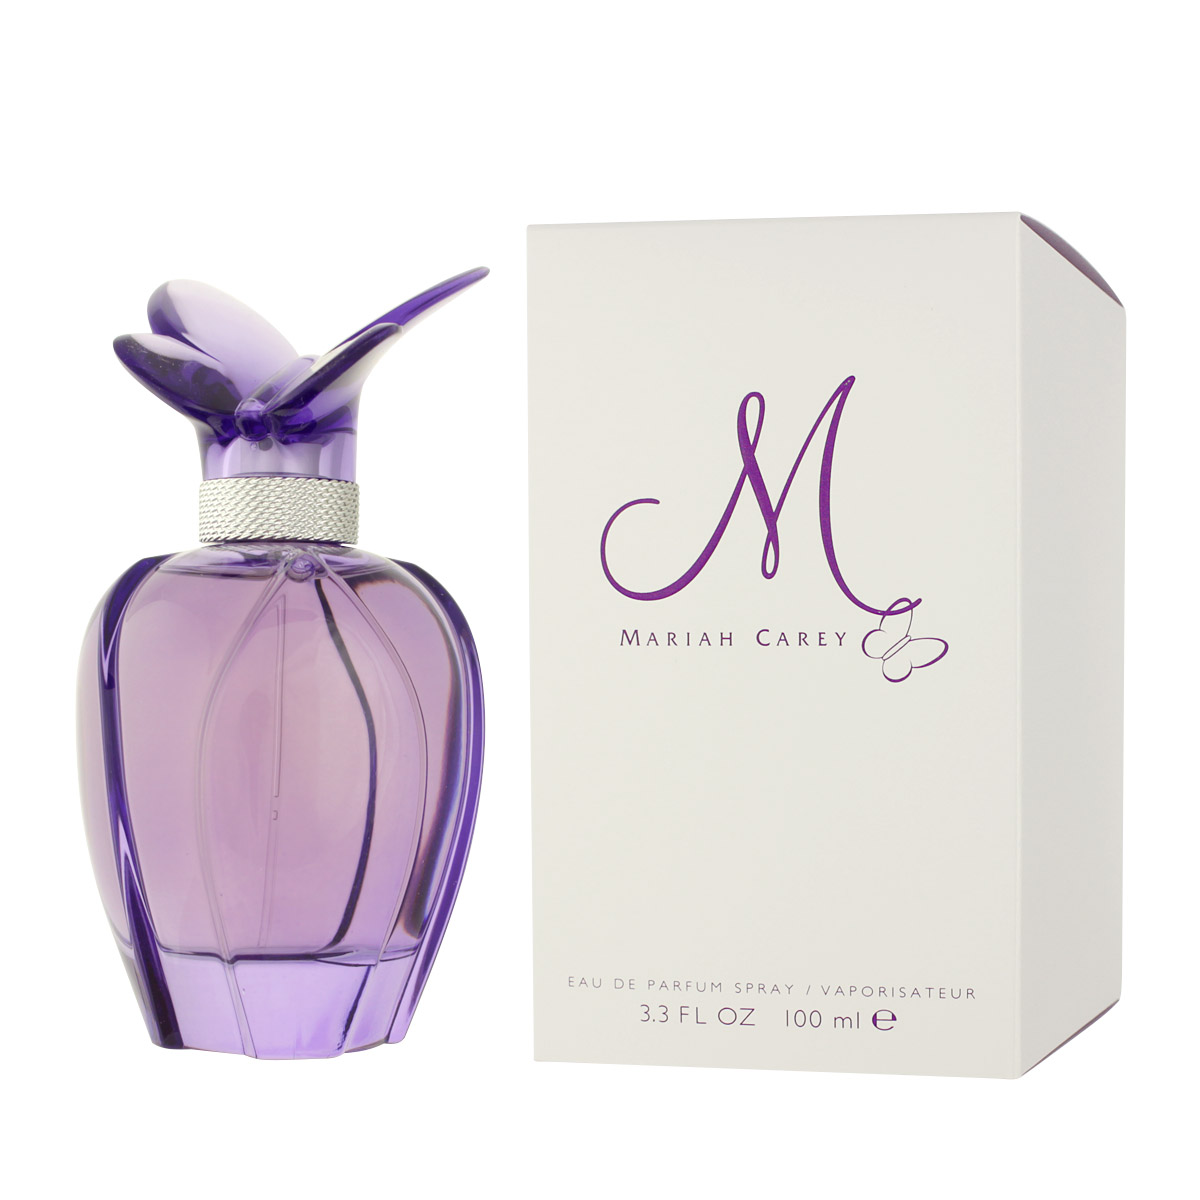 Mariah Carey M Eau De Parfum 100 ml (woman) 45593